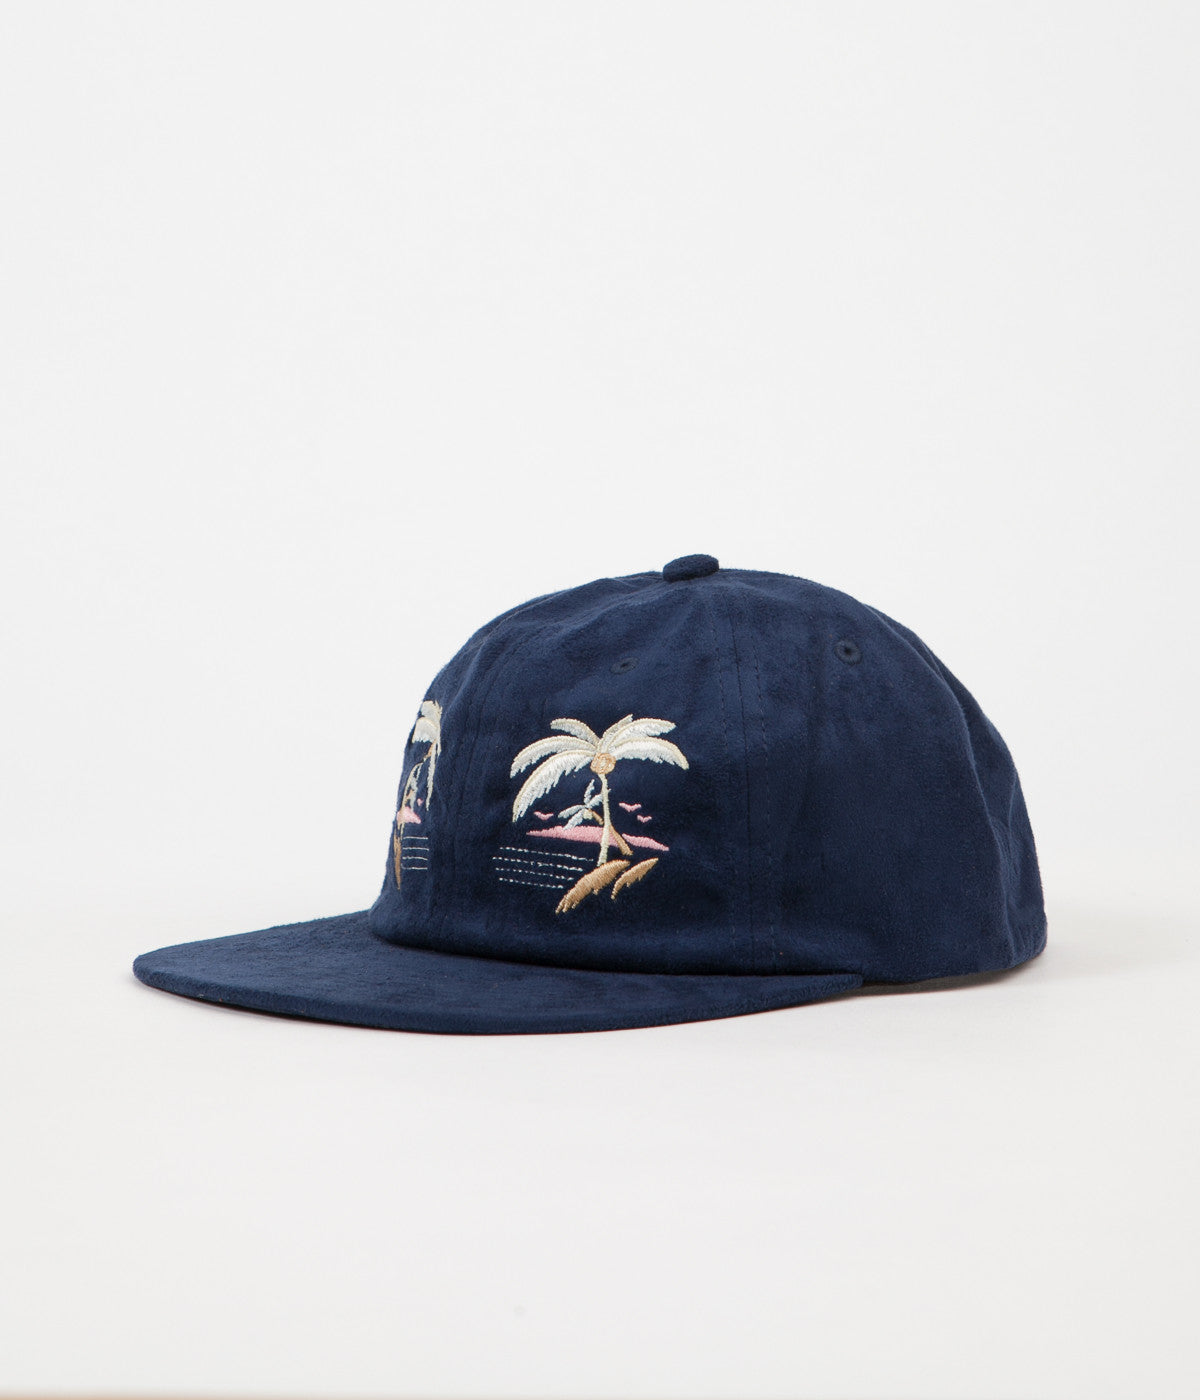 HUF Souvenir 6 Panel Cap - Navy